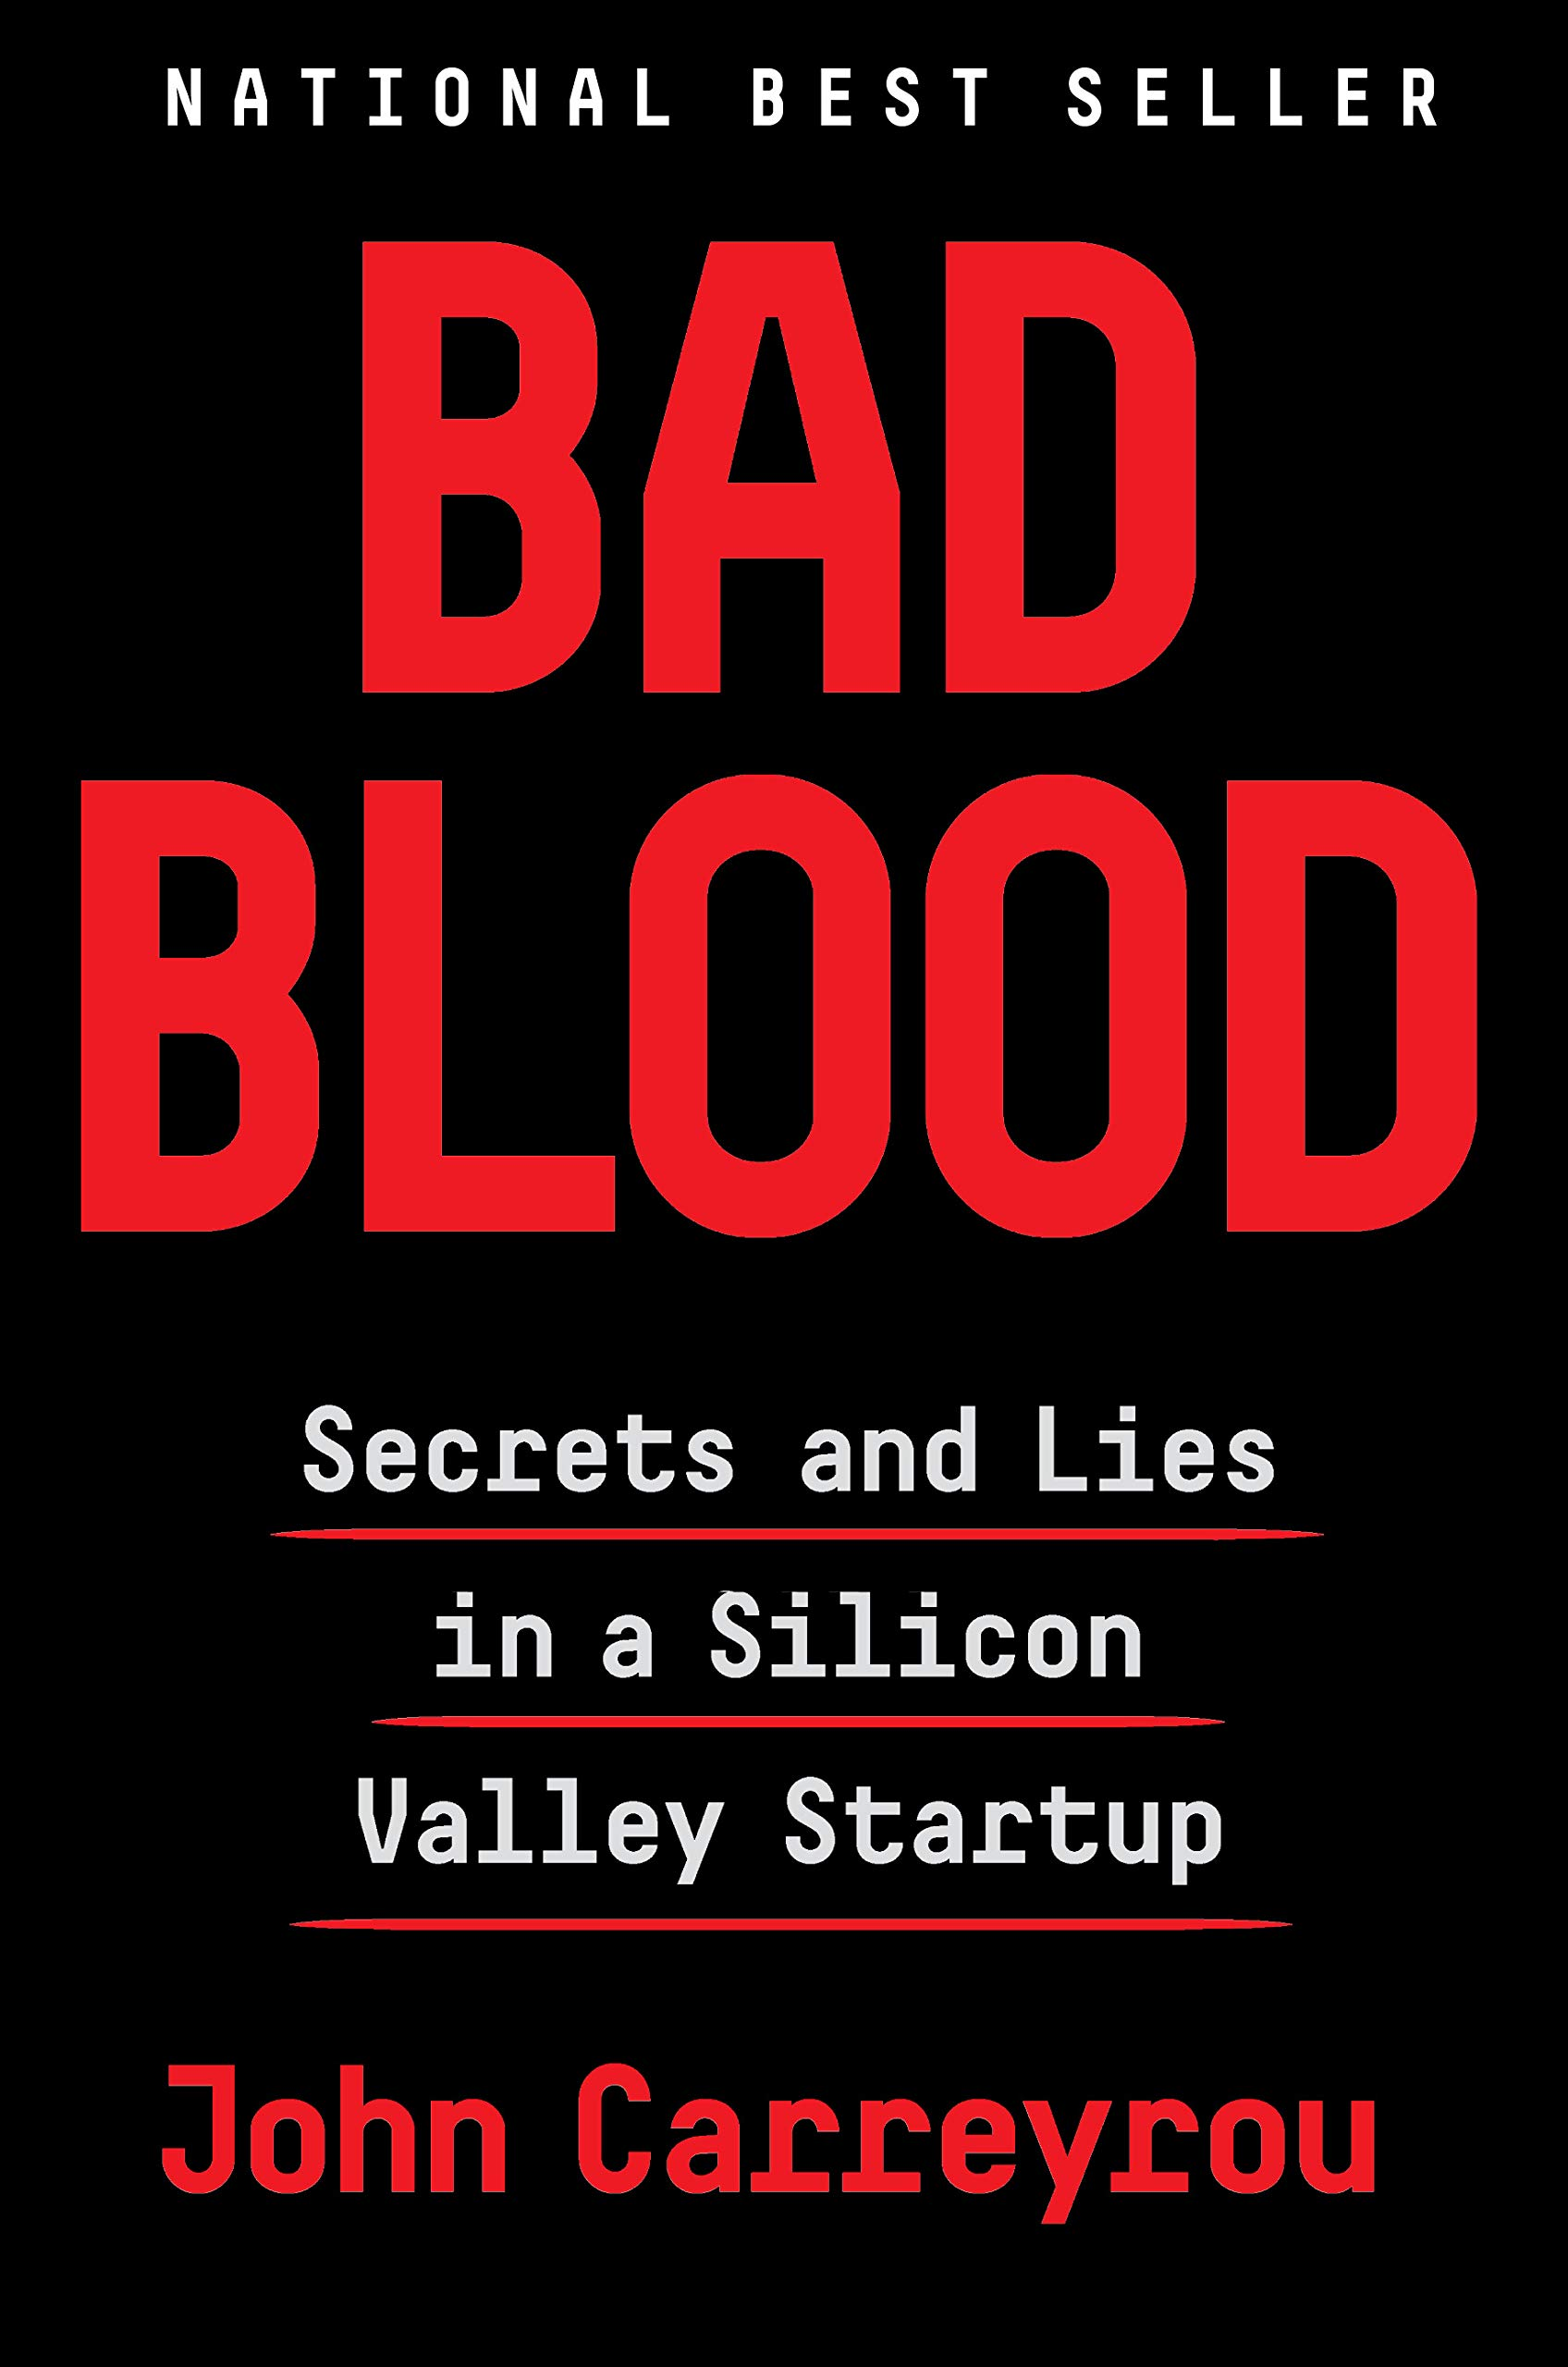 Bad Bood: Secrets and Lies in a Silicon Valley Startup by John Carreyrou - Remember when I said I was on a non-fiction kick? Told ya so! My book club chose this as our July pick and I'm so glad we did, because I'm not sure I would have selected it for myself otherwise. One of my reading goals for 2019 was to diversify my reading — particularly in the non-fiction space — and it's thanks to books like this that I'm picking up steam toward accomplishing it. I didn't know much about the Theranos scandal before Bad Blood, but the book has made me excited to learn everything there is to know about it!